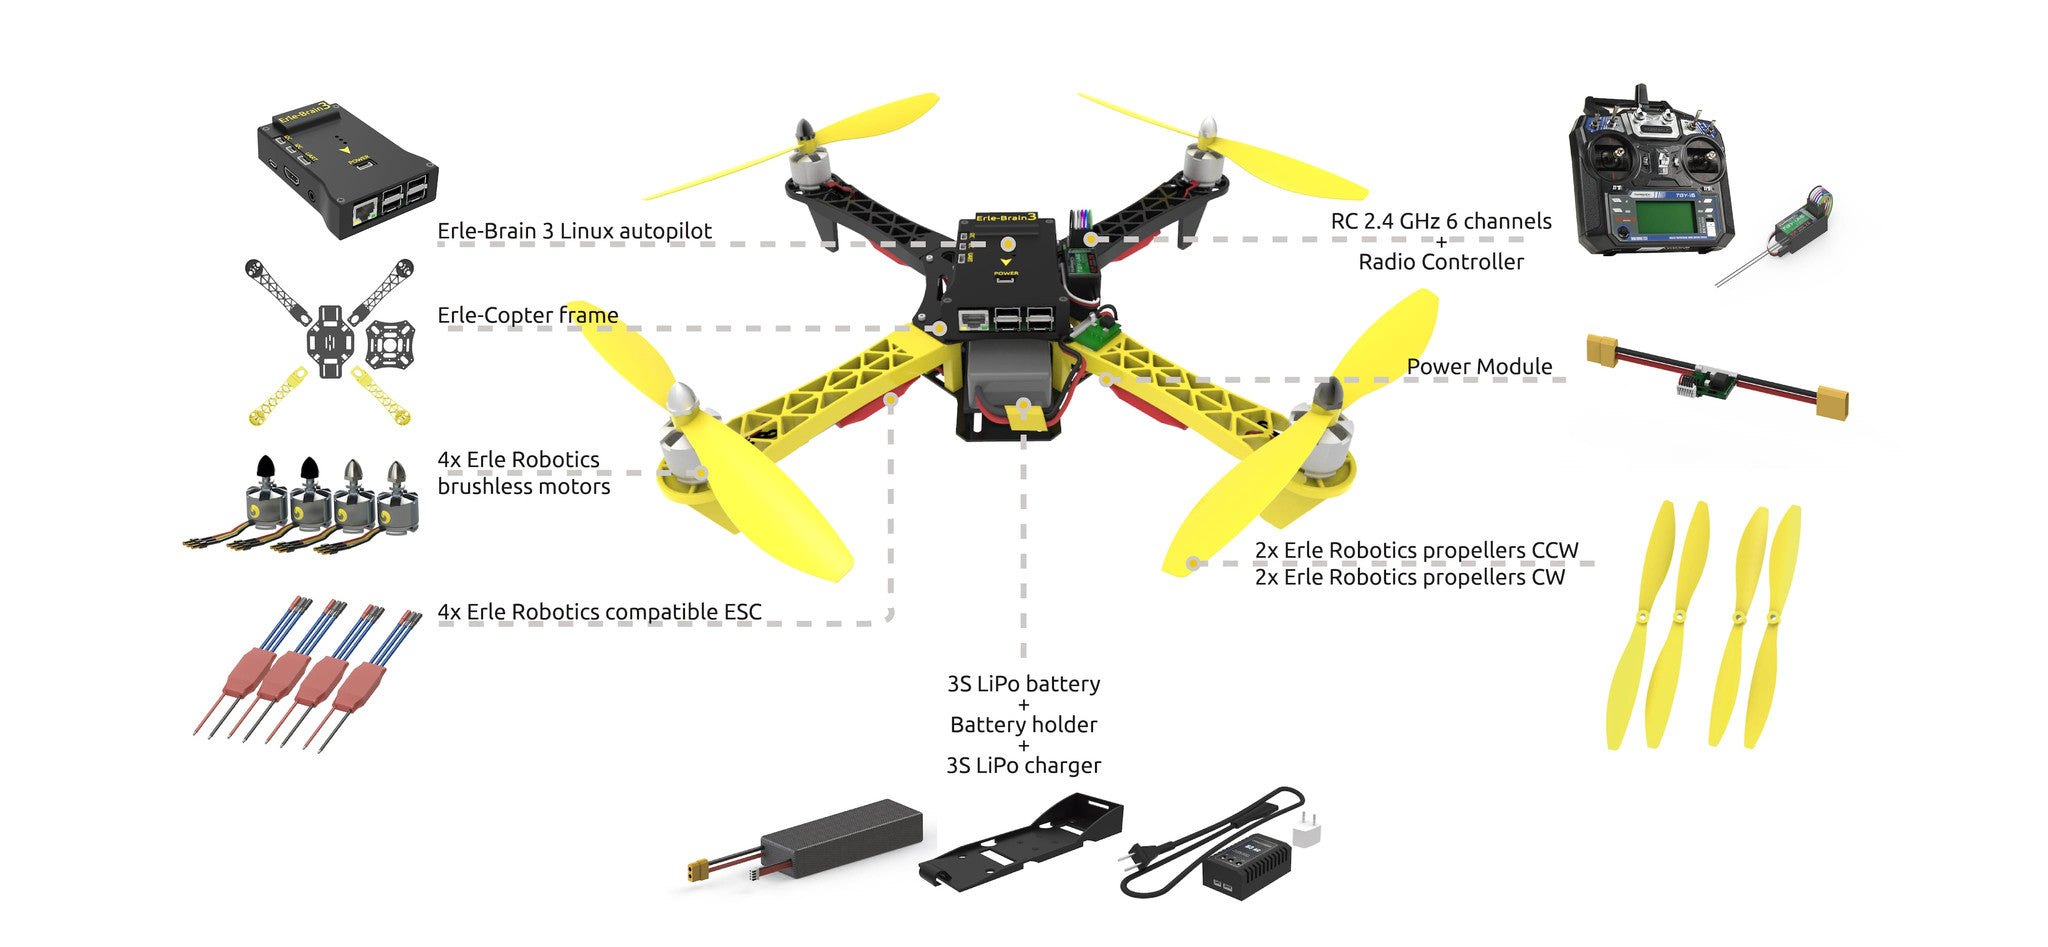 Erle copter drone kit dabit industries 1x 5500 mah 3s lipo battery 1x 3s lipo charger rc 24 ghz 6 channels includes transmitter and receiver solutioingenieria Images